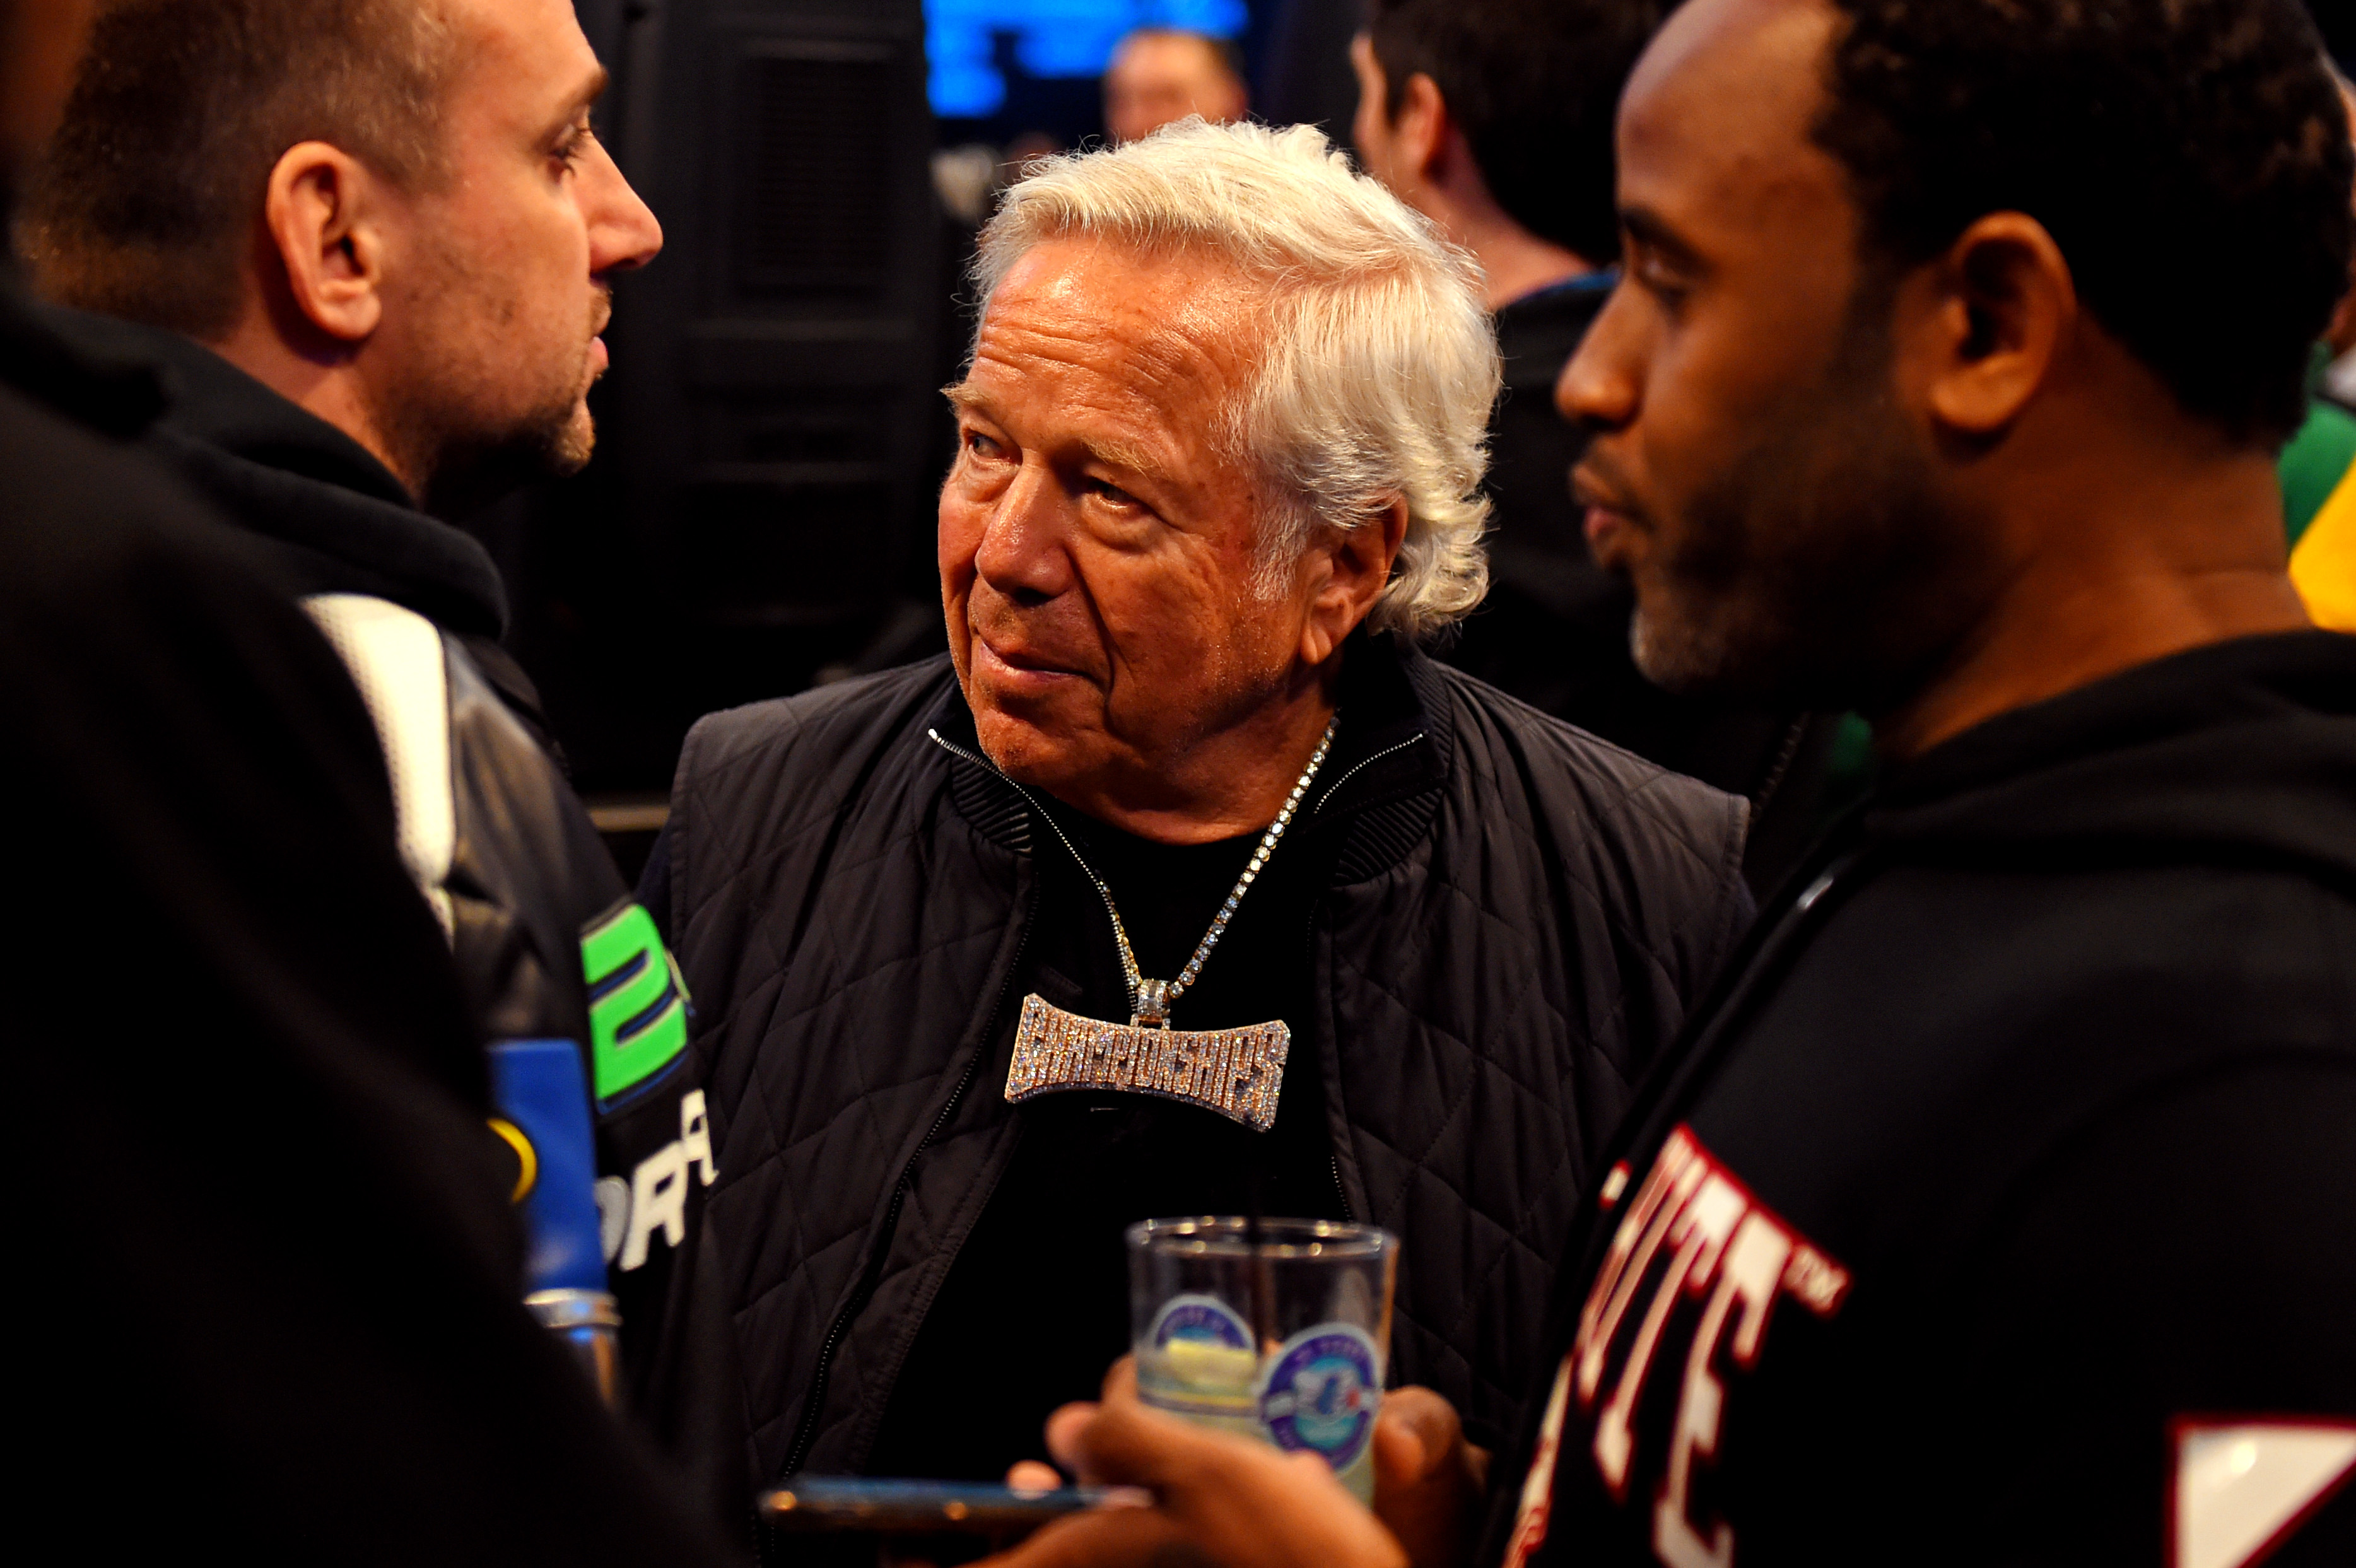 Patriots owner Robert Kraft charged with solicitation of prostitution, per Florida police. What we know so fa…